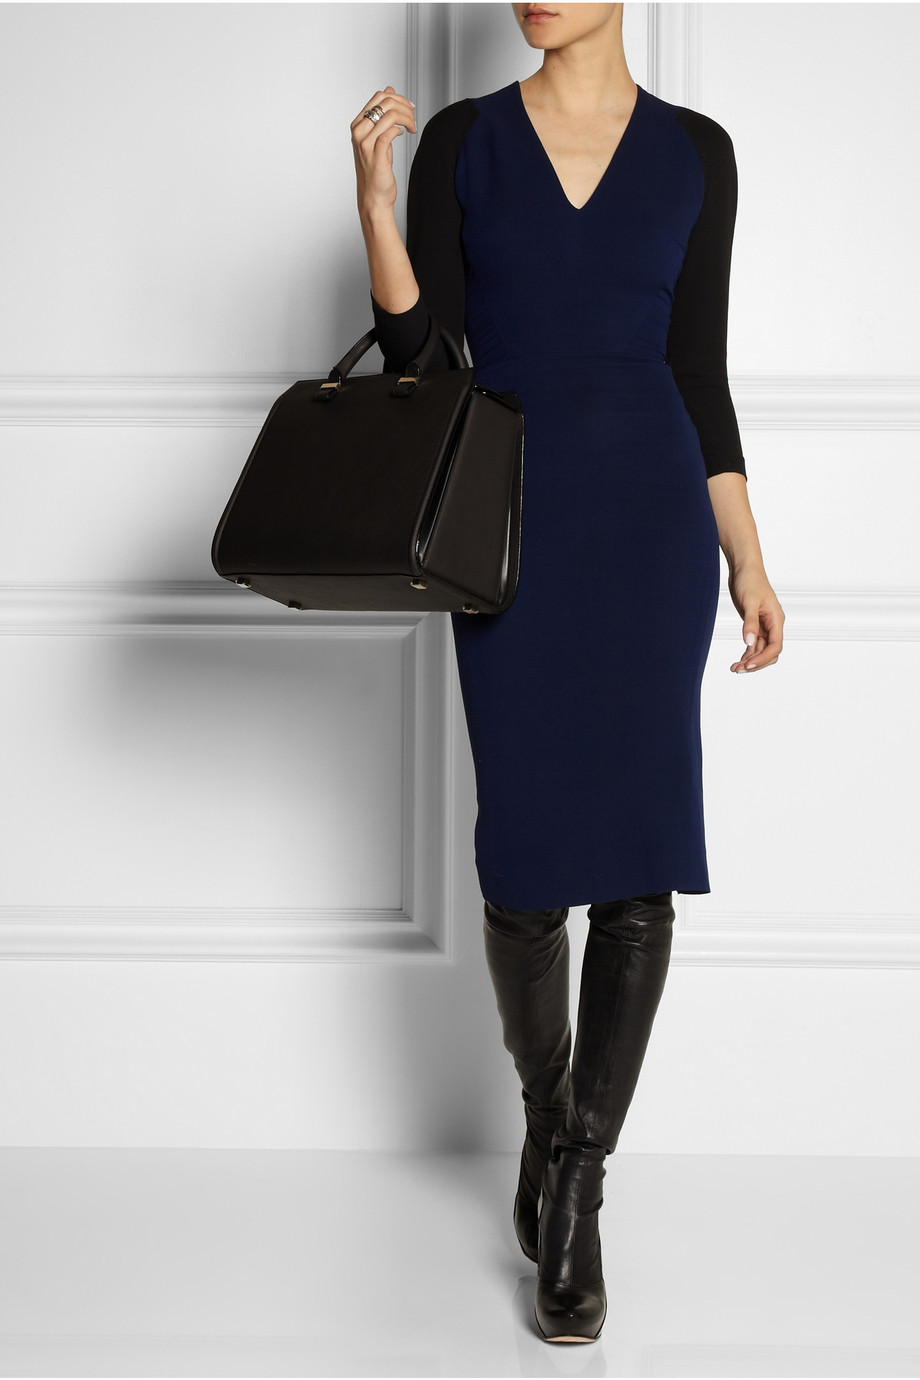 Victoria Beckham bags for autumn-winter 2013-2014 (18)